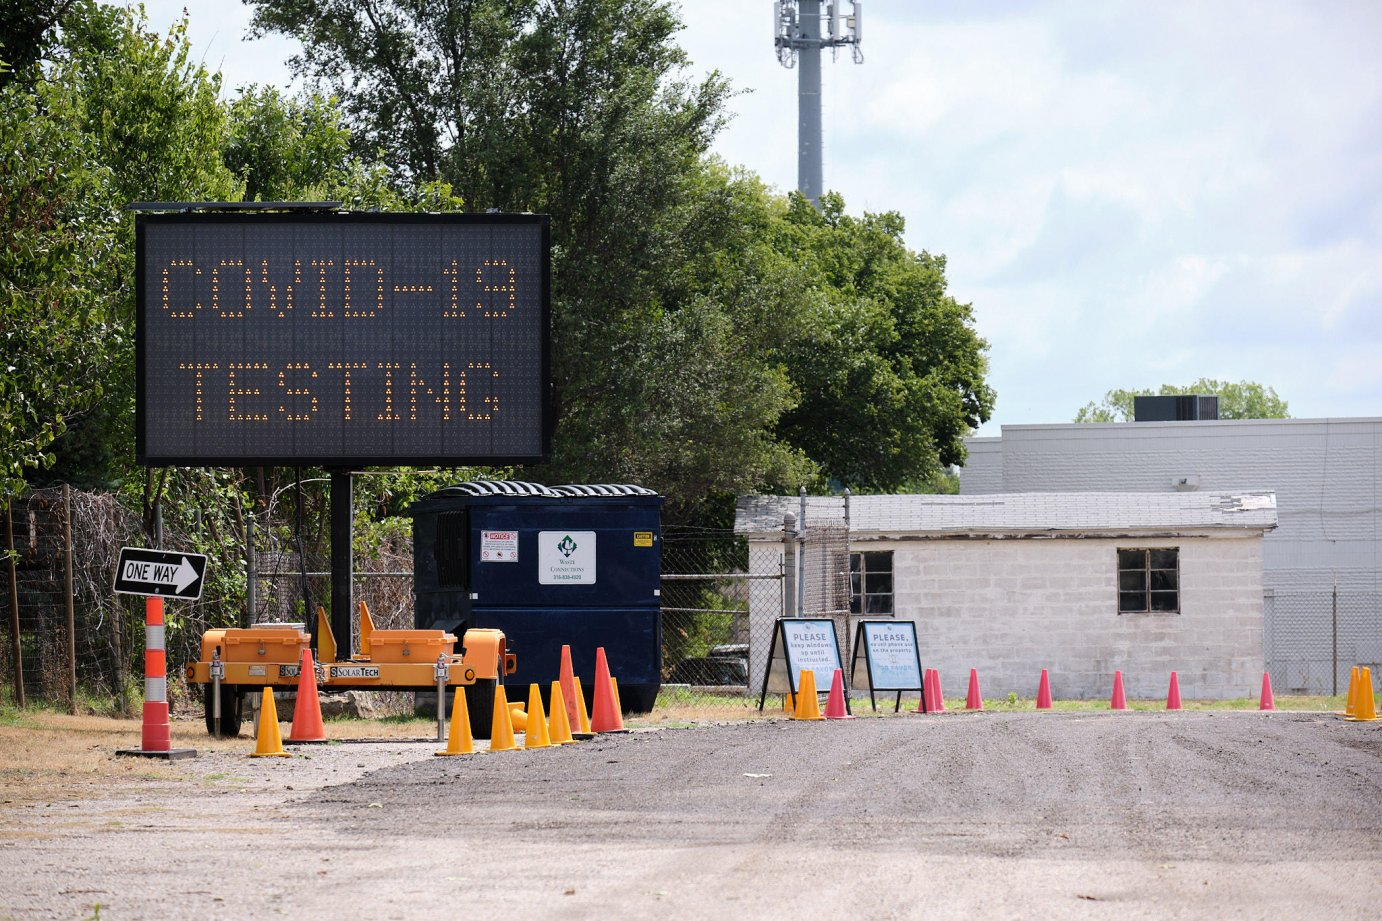 A coronavirus testing site in Sedgwick County. (Photo by Brian Grimmett, Kansas News Service)